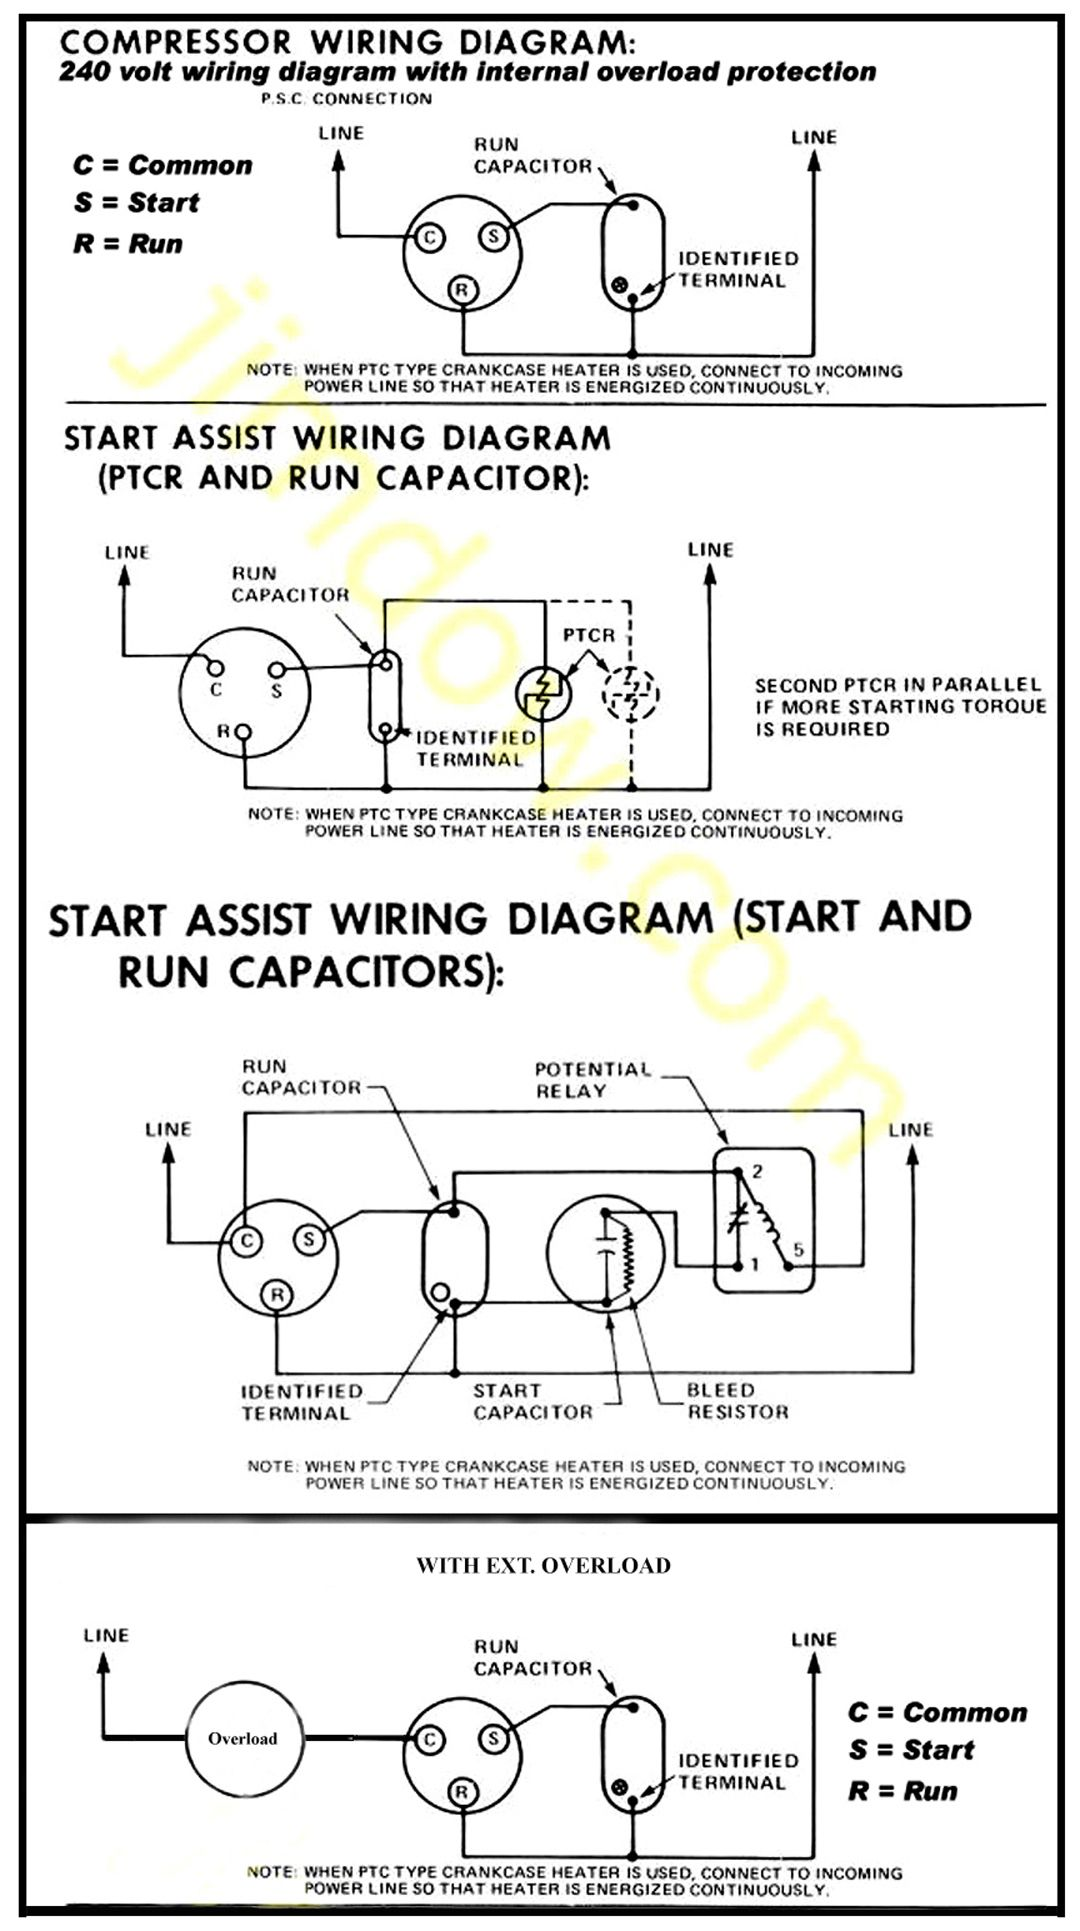 Wiring Diagram For 220 Volt Air Compressor Bookingritzcarlton Info Refrigeration And Air Conditioning Hvac Air Conditioning Air Conditioner Compressor